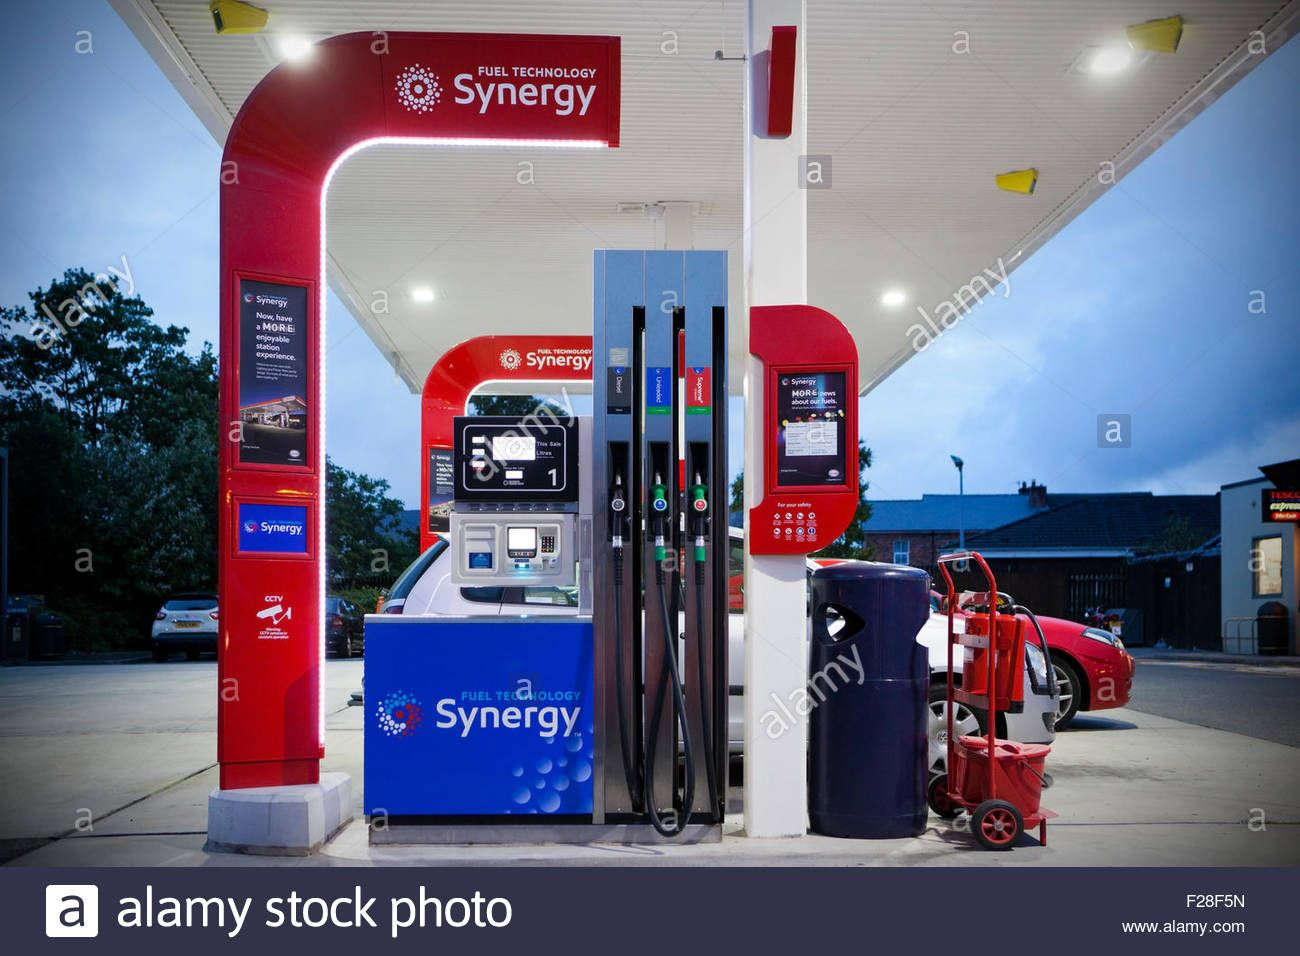 Download This Stock Image New Modern Synergy Exxon Mobil Petrol Pumps In Pilling Lancashire Uk F28f5n From Alamy S Library Of Mill Exxon Photo Stock Photos